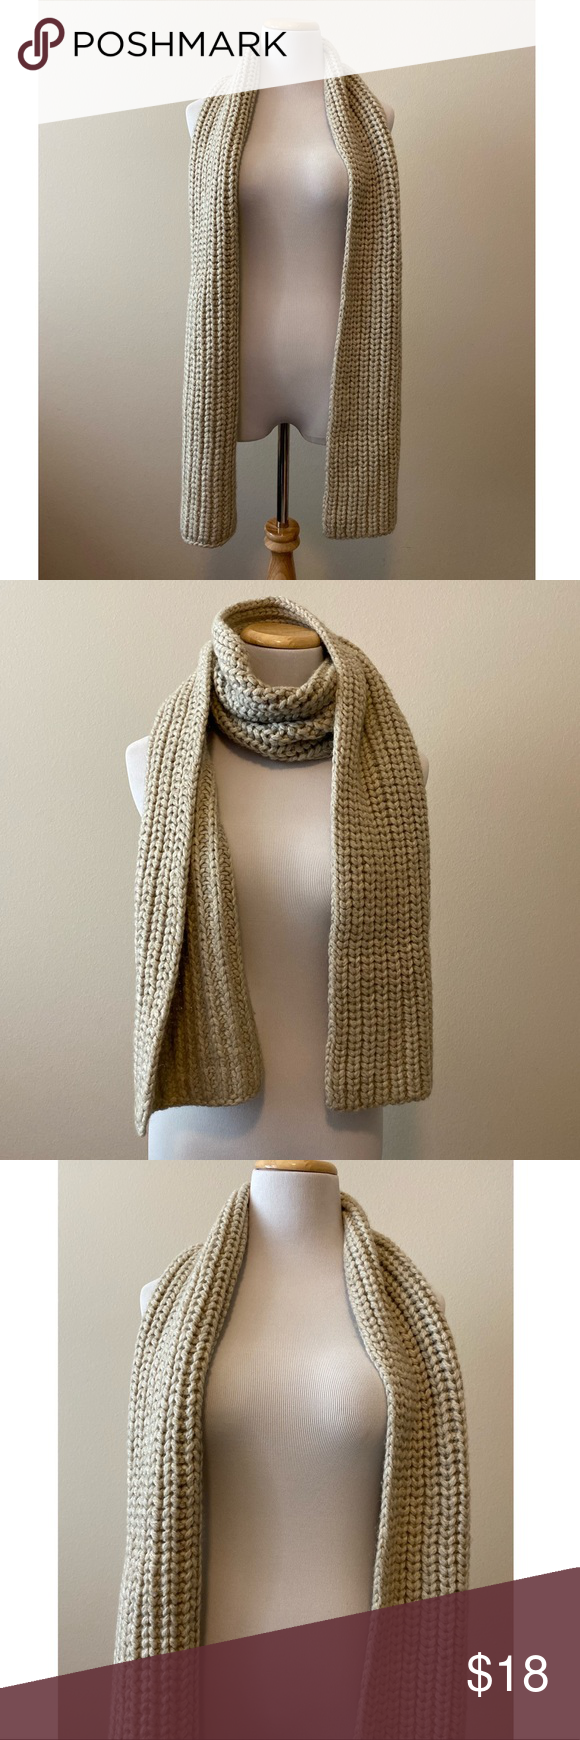 Photo of Gap Oversized Knit Scarf in Oatmeal NWOT NWOT Gap Thick Rib Scarf in Oatmeal. Lo…